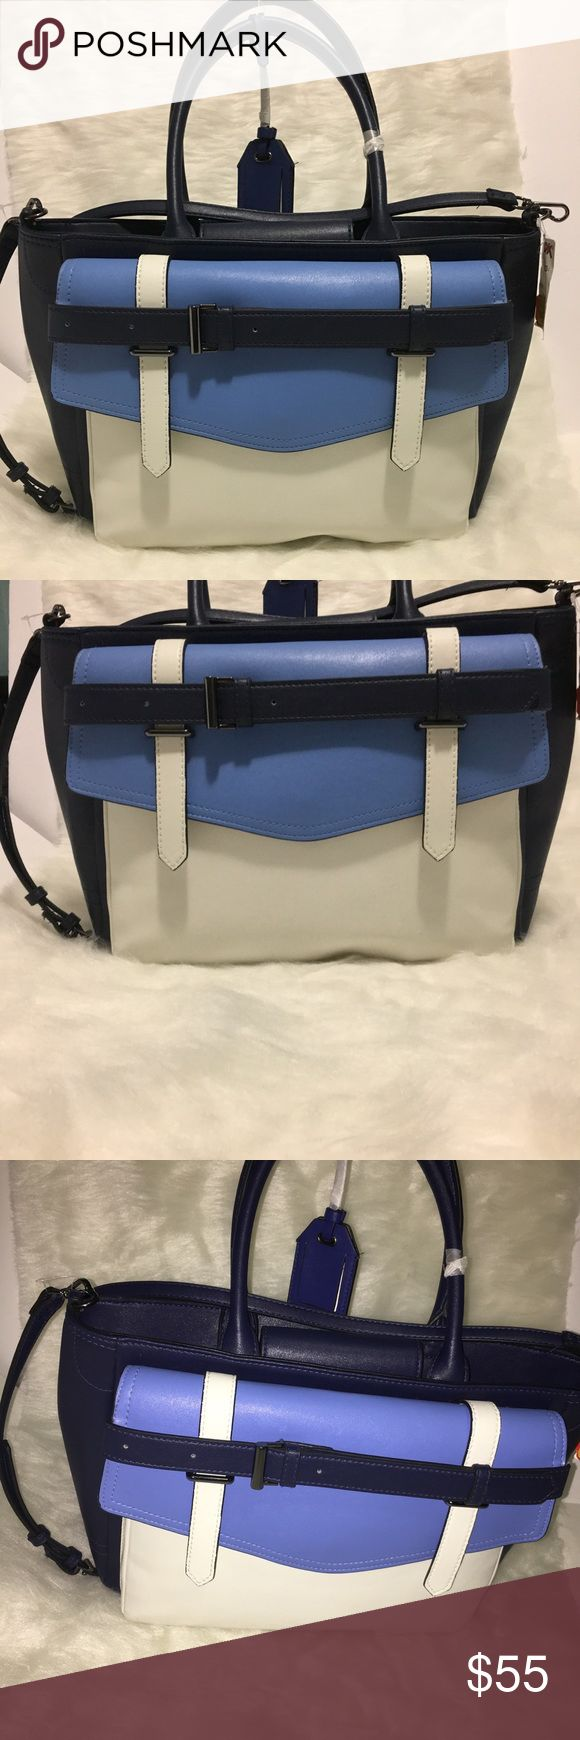 New!Reed Modern American luxury Office,tote/Bag Brand new Reed Modern Luxury Tote Blue Bag, Drop Down Handles,Removable Crossbody Strap,Magnetic Snap Clousure Reed Modern American Luxury Bags Totes